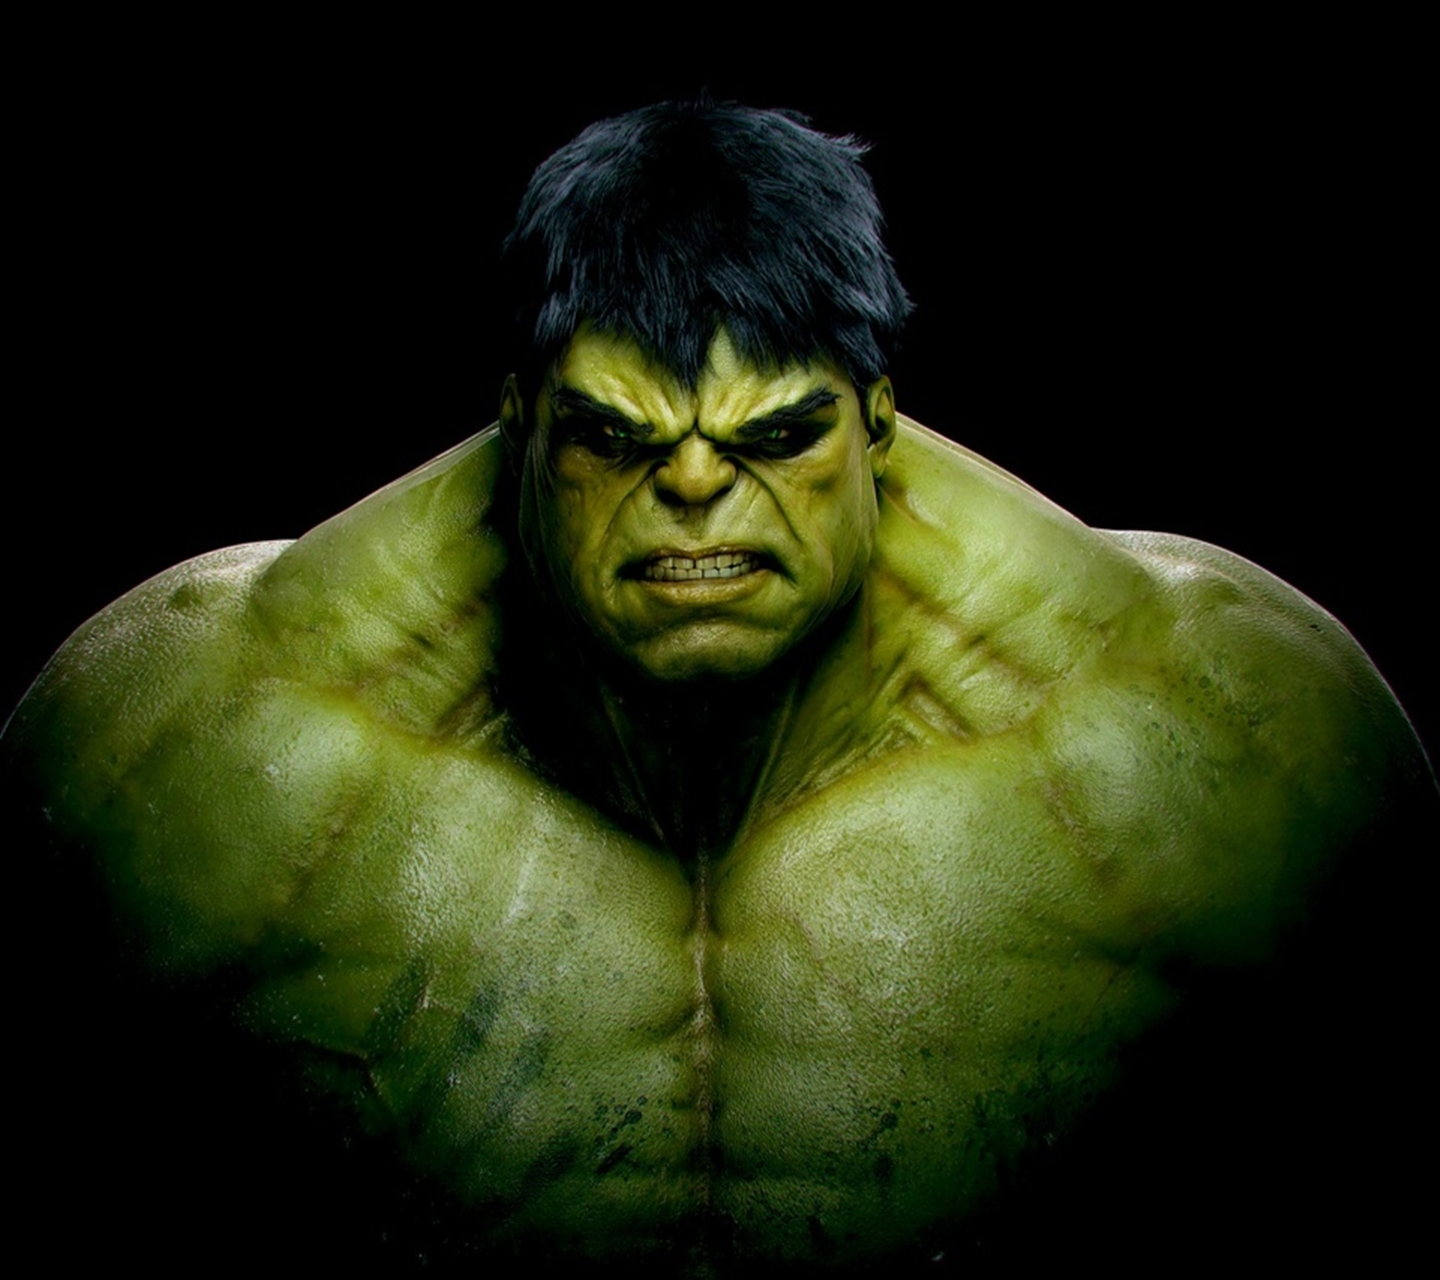 Angry hulk | Incredible Hulk | Avenger Hulk | Hulk Amoled Wallpapers 2020